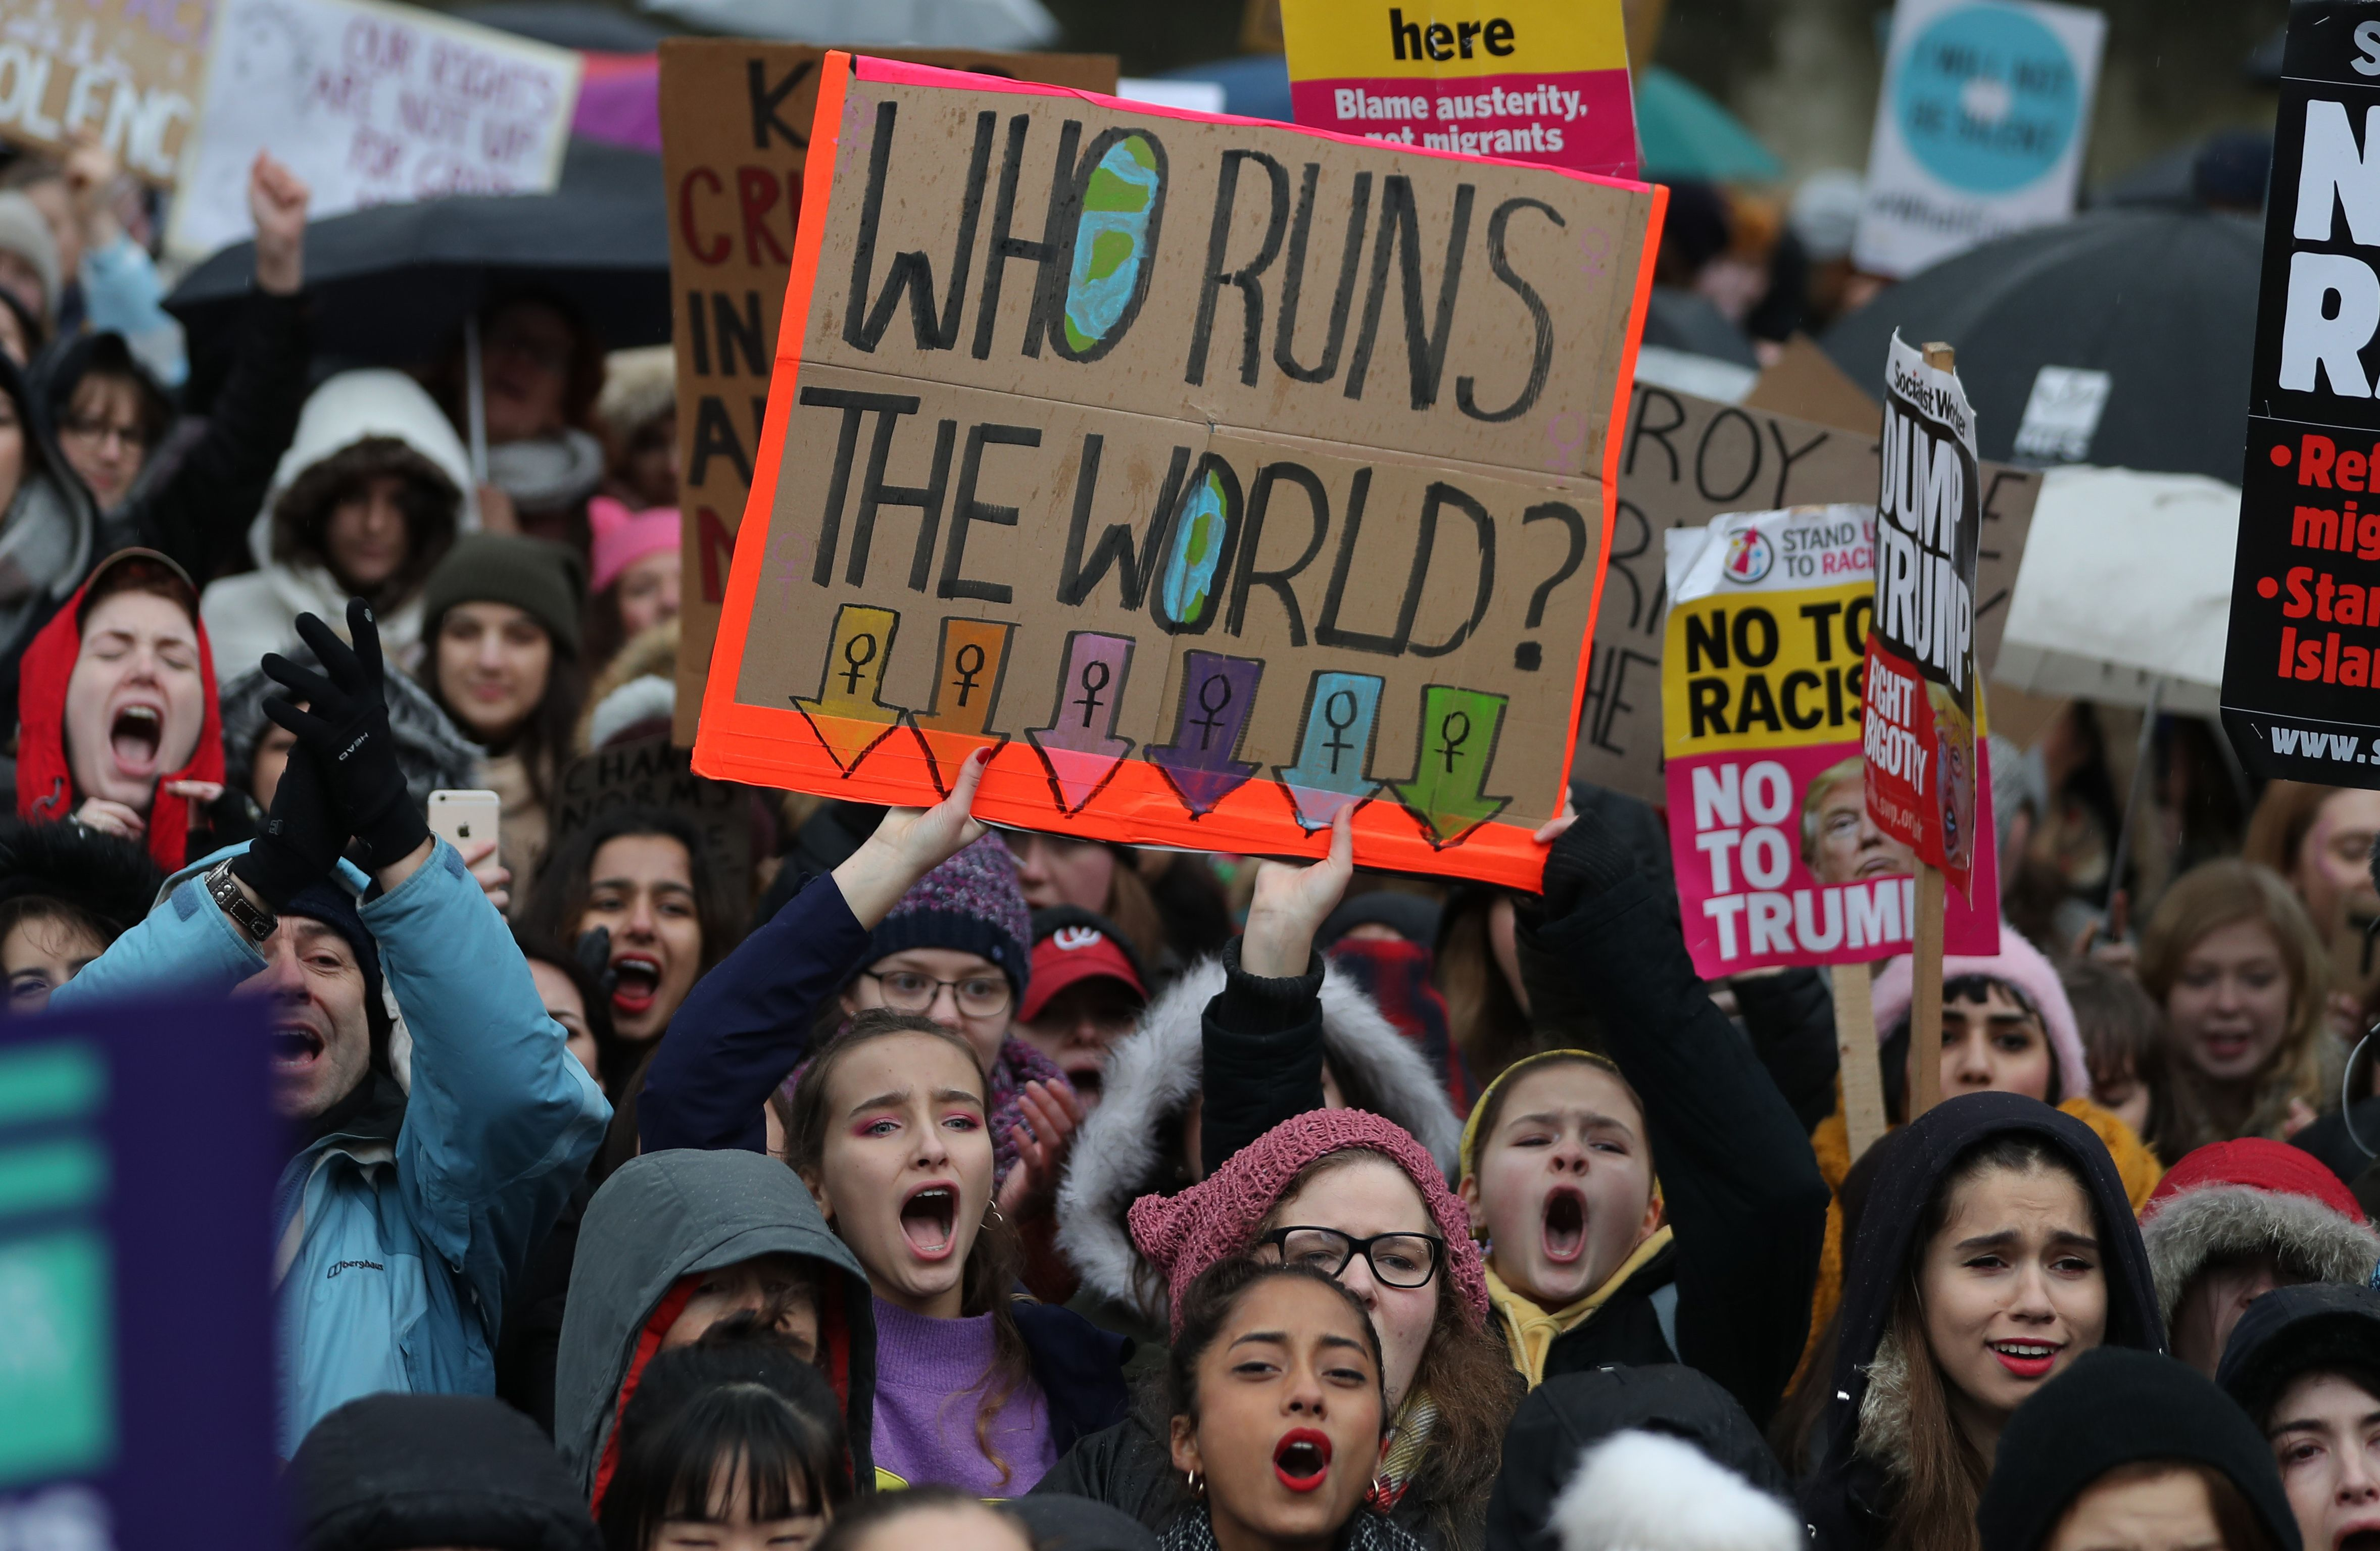 Protesters hold up placards during the Women's March in London on Jan. 21, 2018 as part of a global day of protests, a year to the day since Donald Trump took office as U.S. president.